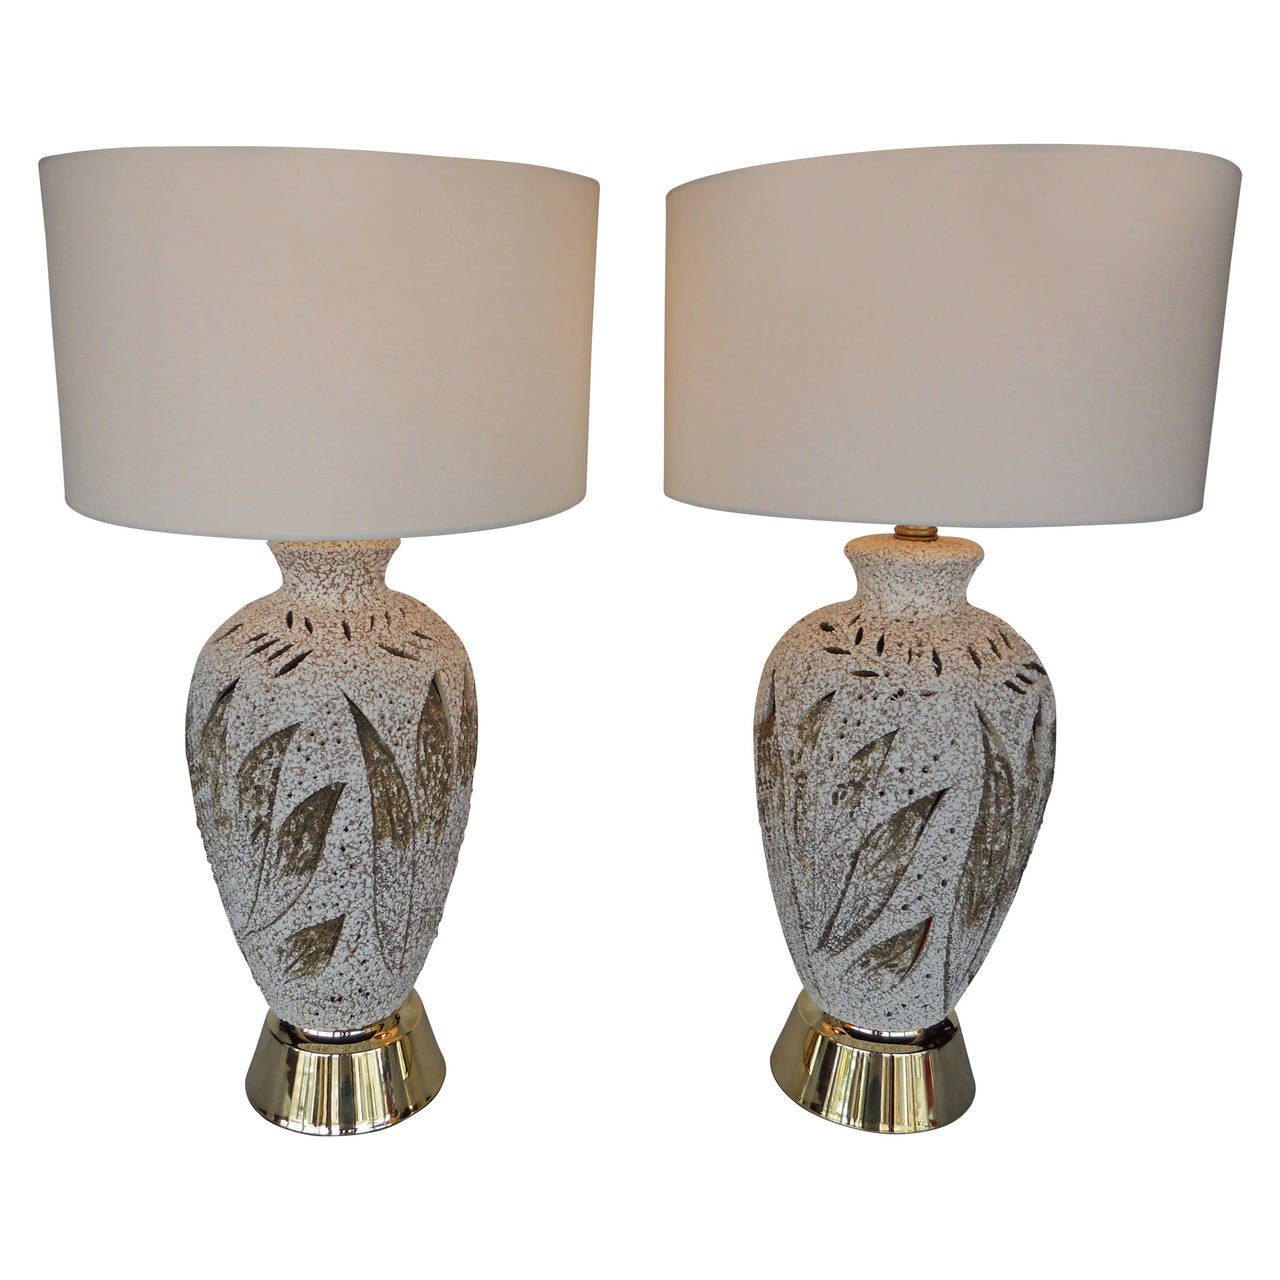 pair of american vintage table lamps for sale at 1stdibs. Black Bedroom Furniture Sets. Home Design Ideas